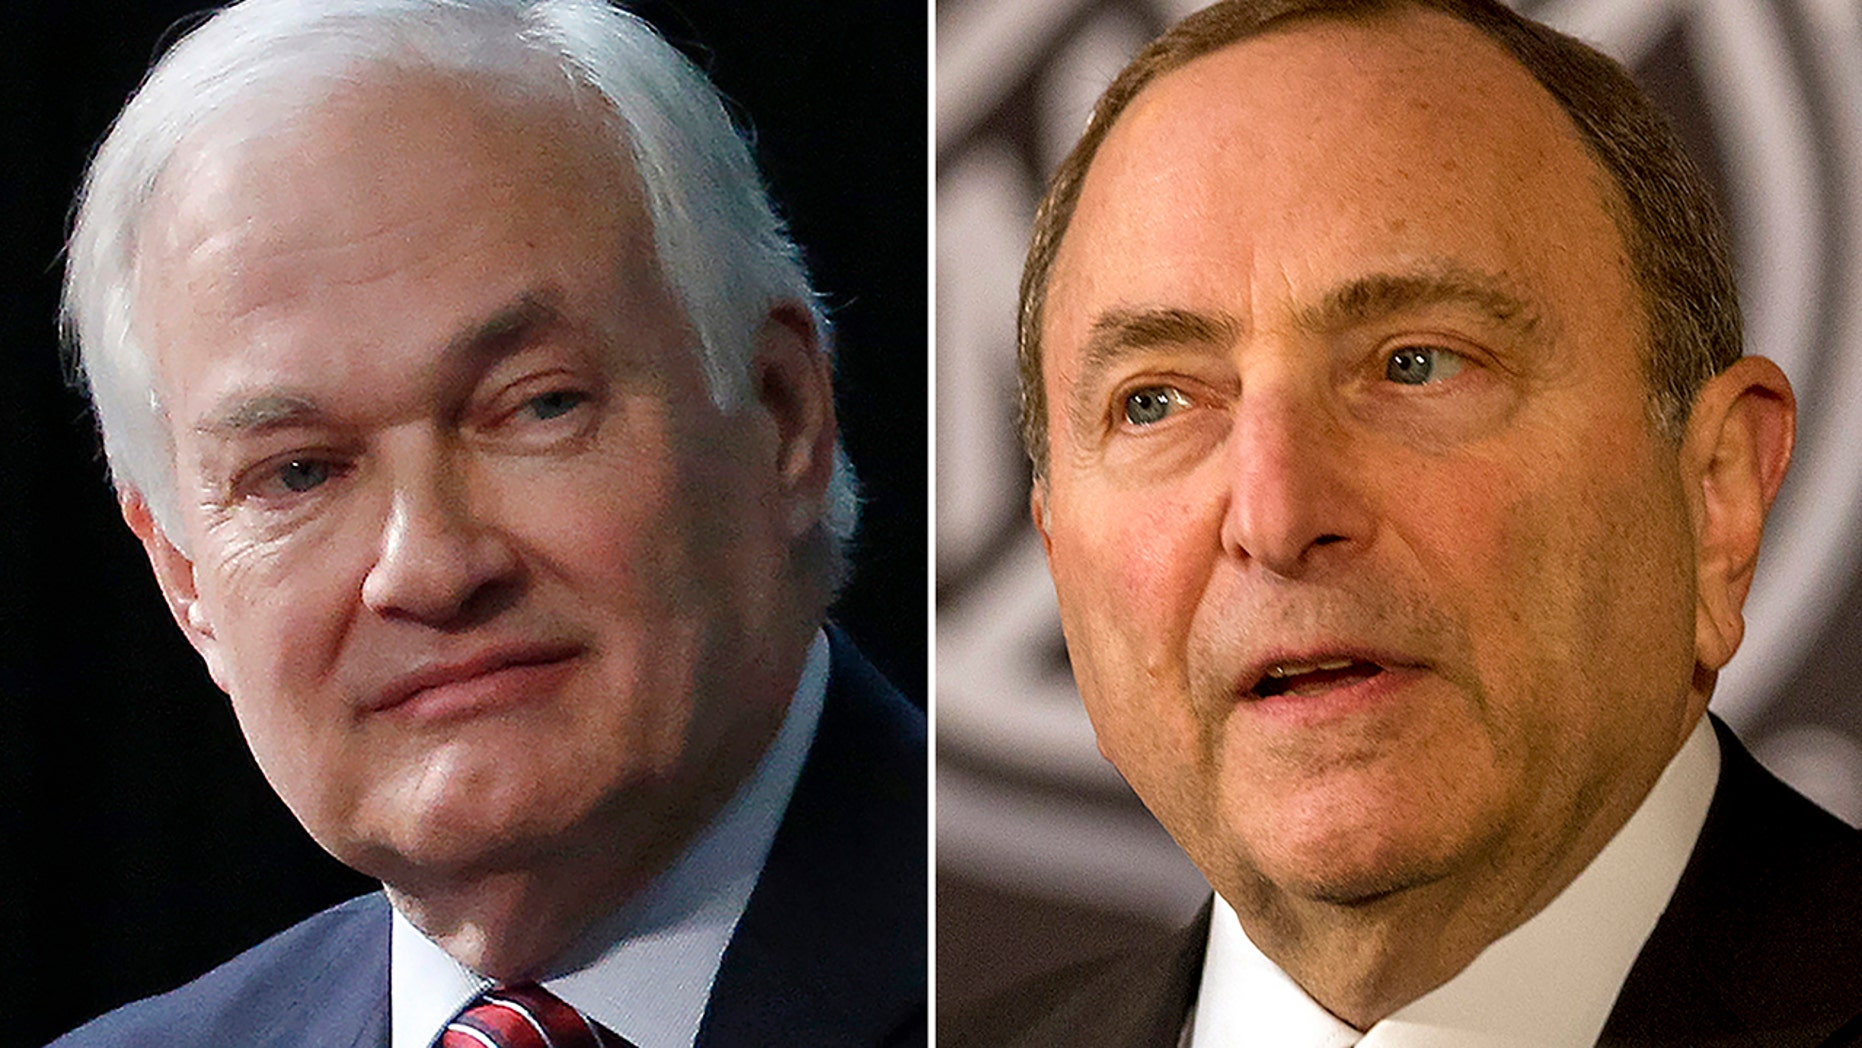 FILE - At left, in a 2015 file photo, is NHL Players Association executive director Donald Fehr. At right, in a 2018 file photo, is NHL commissioner Gary Bettman.  (AP Photo/File)